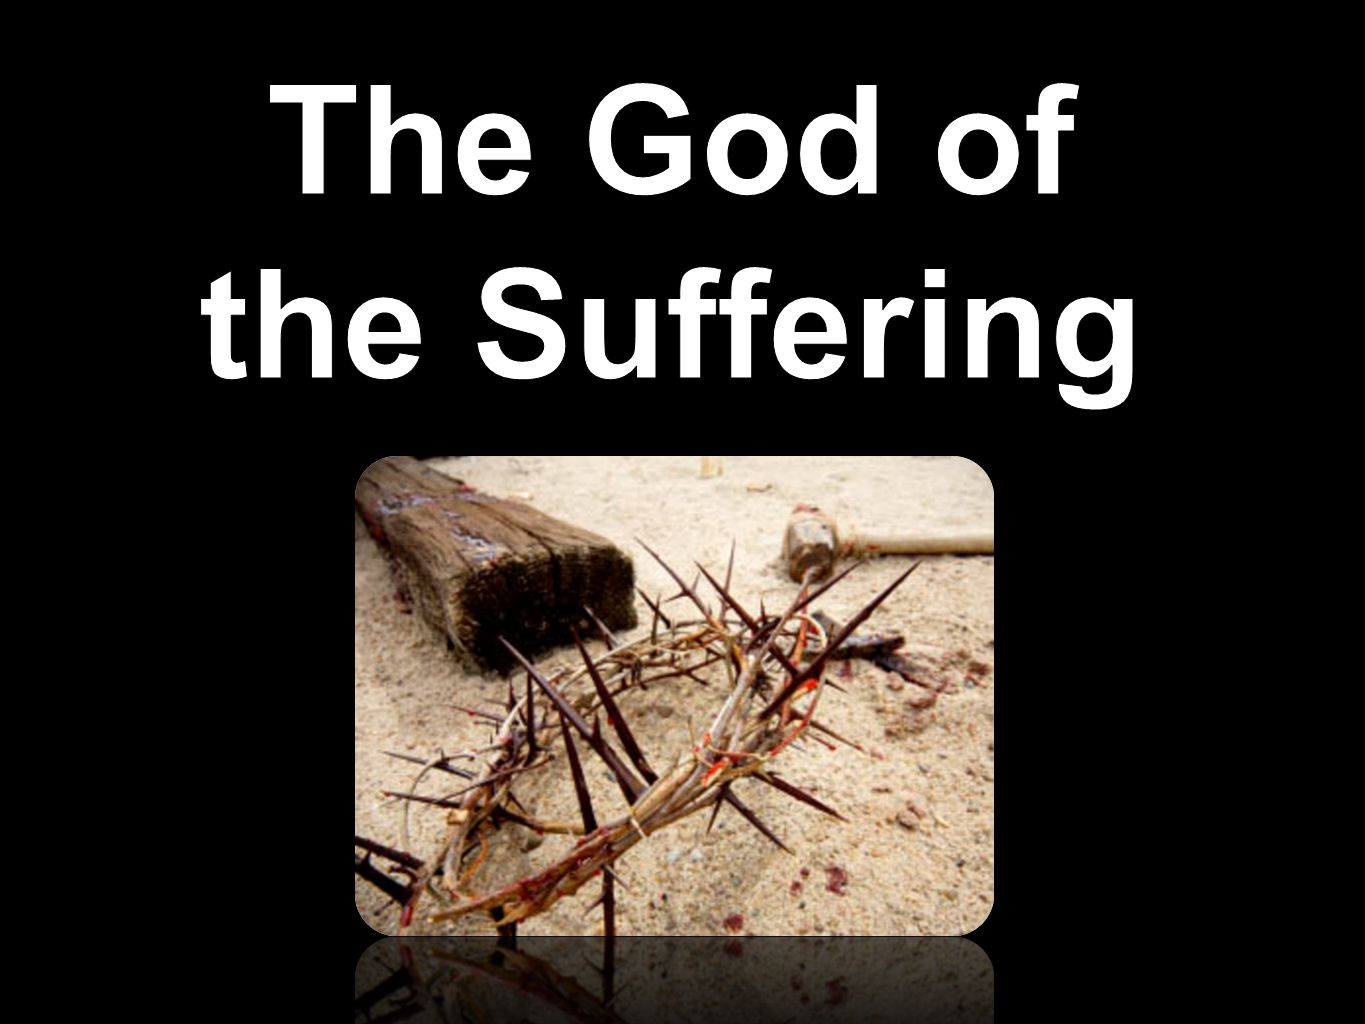 The God of the Suffering